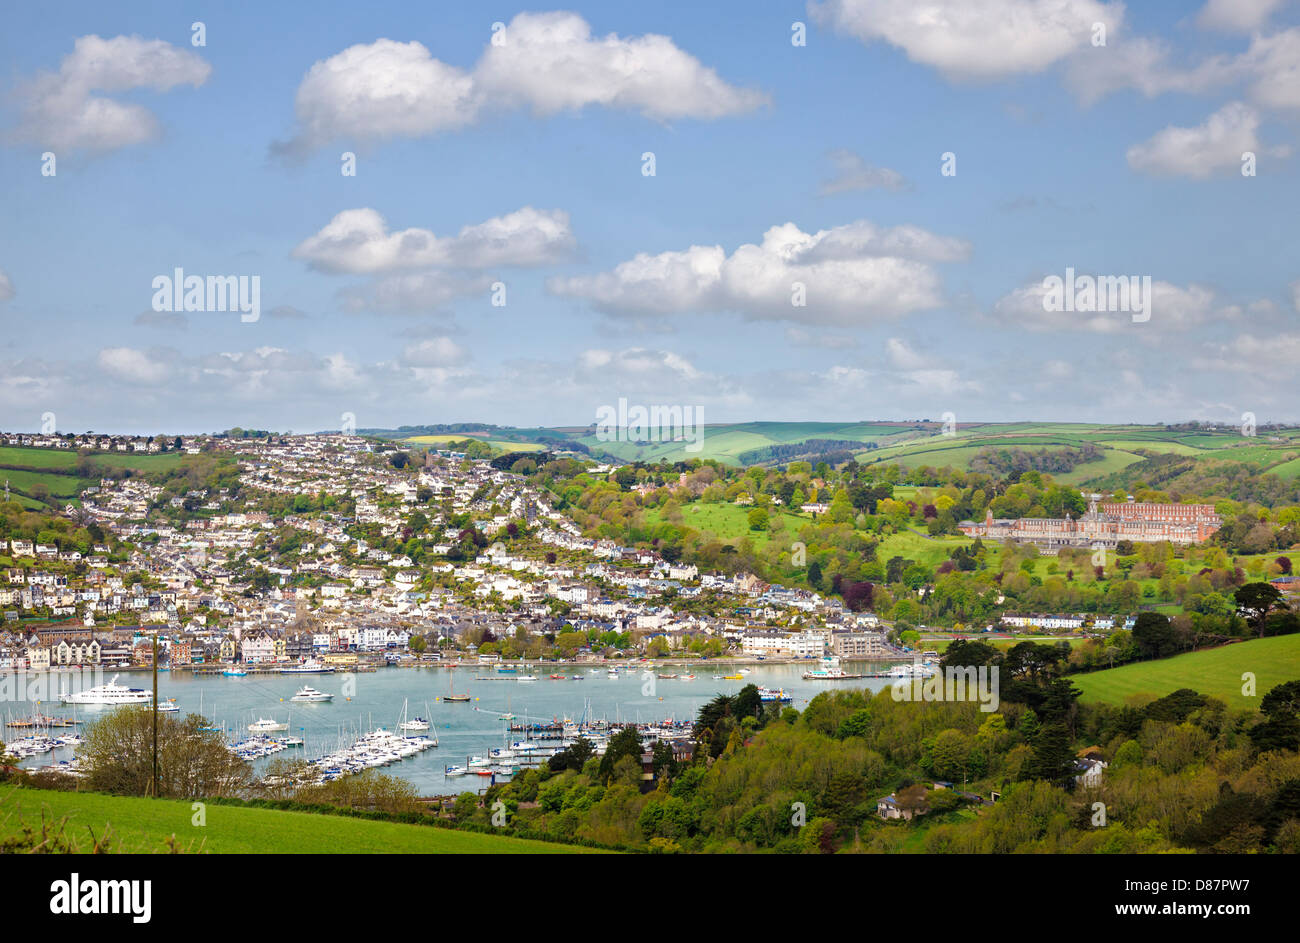 Dartmouth and the Royal Naval College, Devon, England, UK Stock Photo